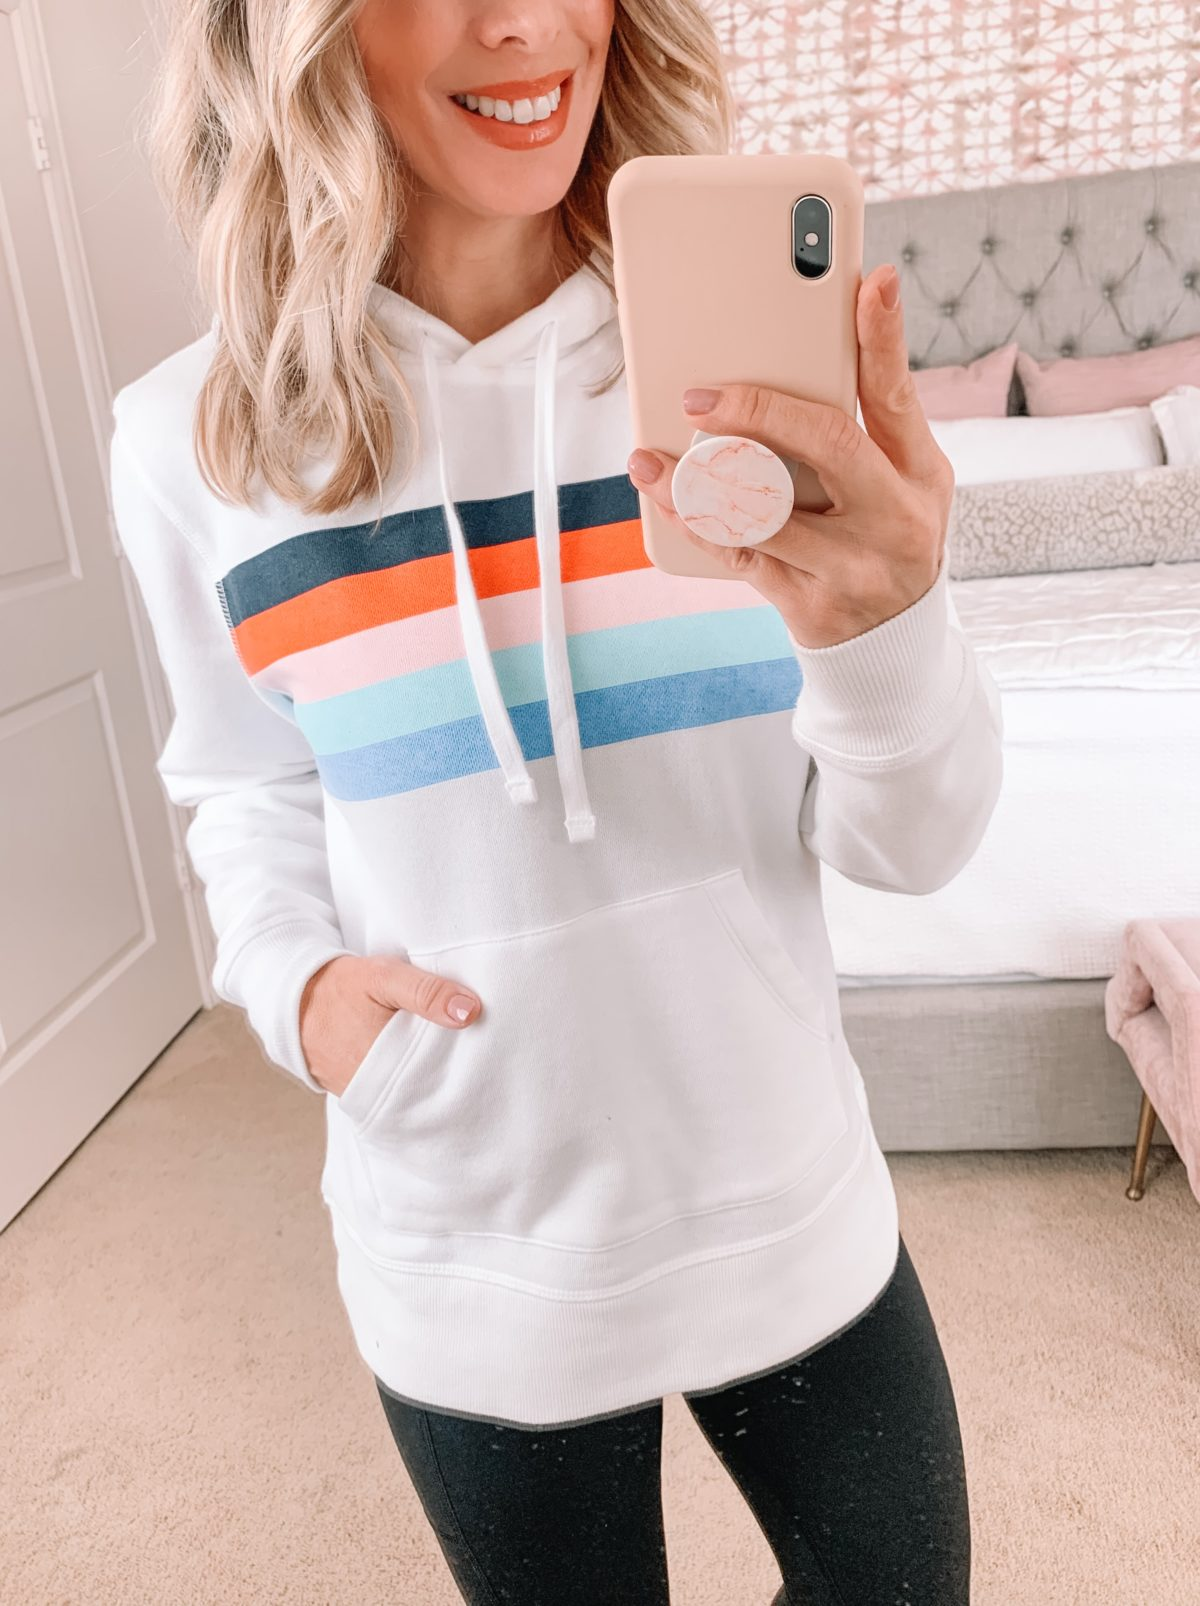 Amazon Fashion Faves, Pullover, Leggings, Wedge Sneakers